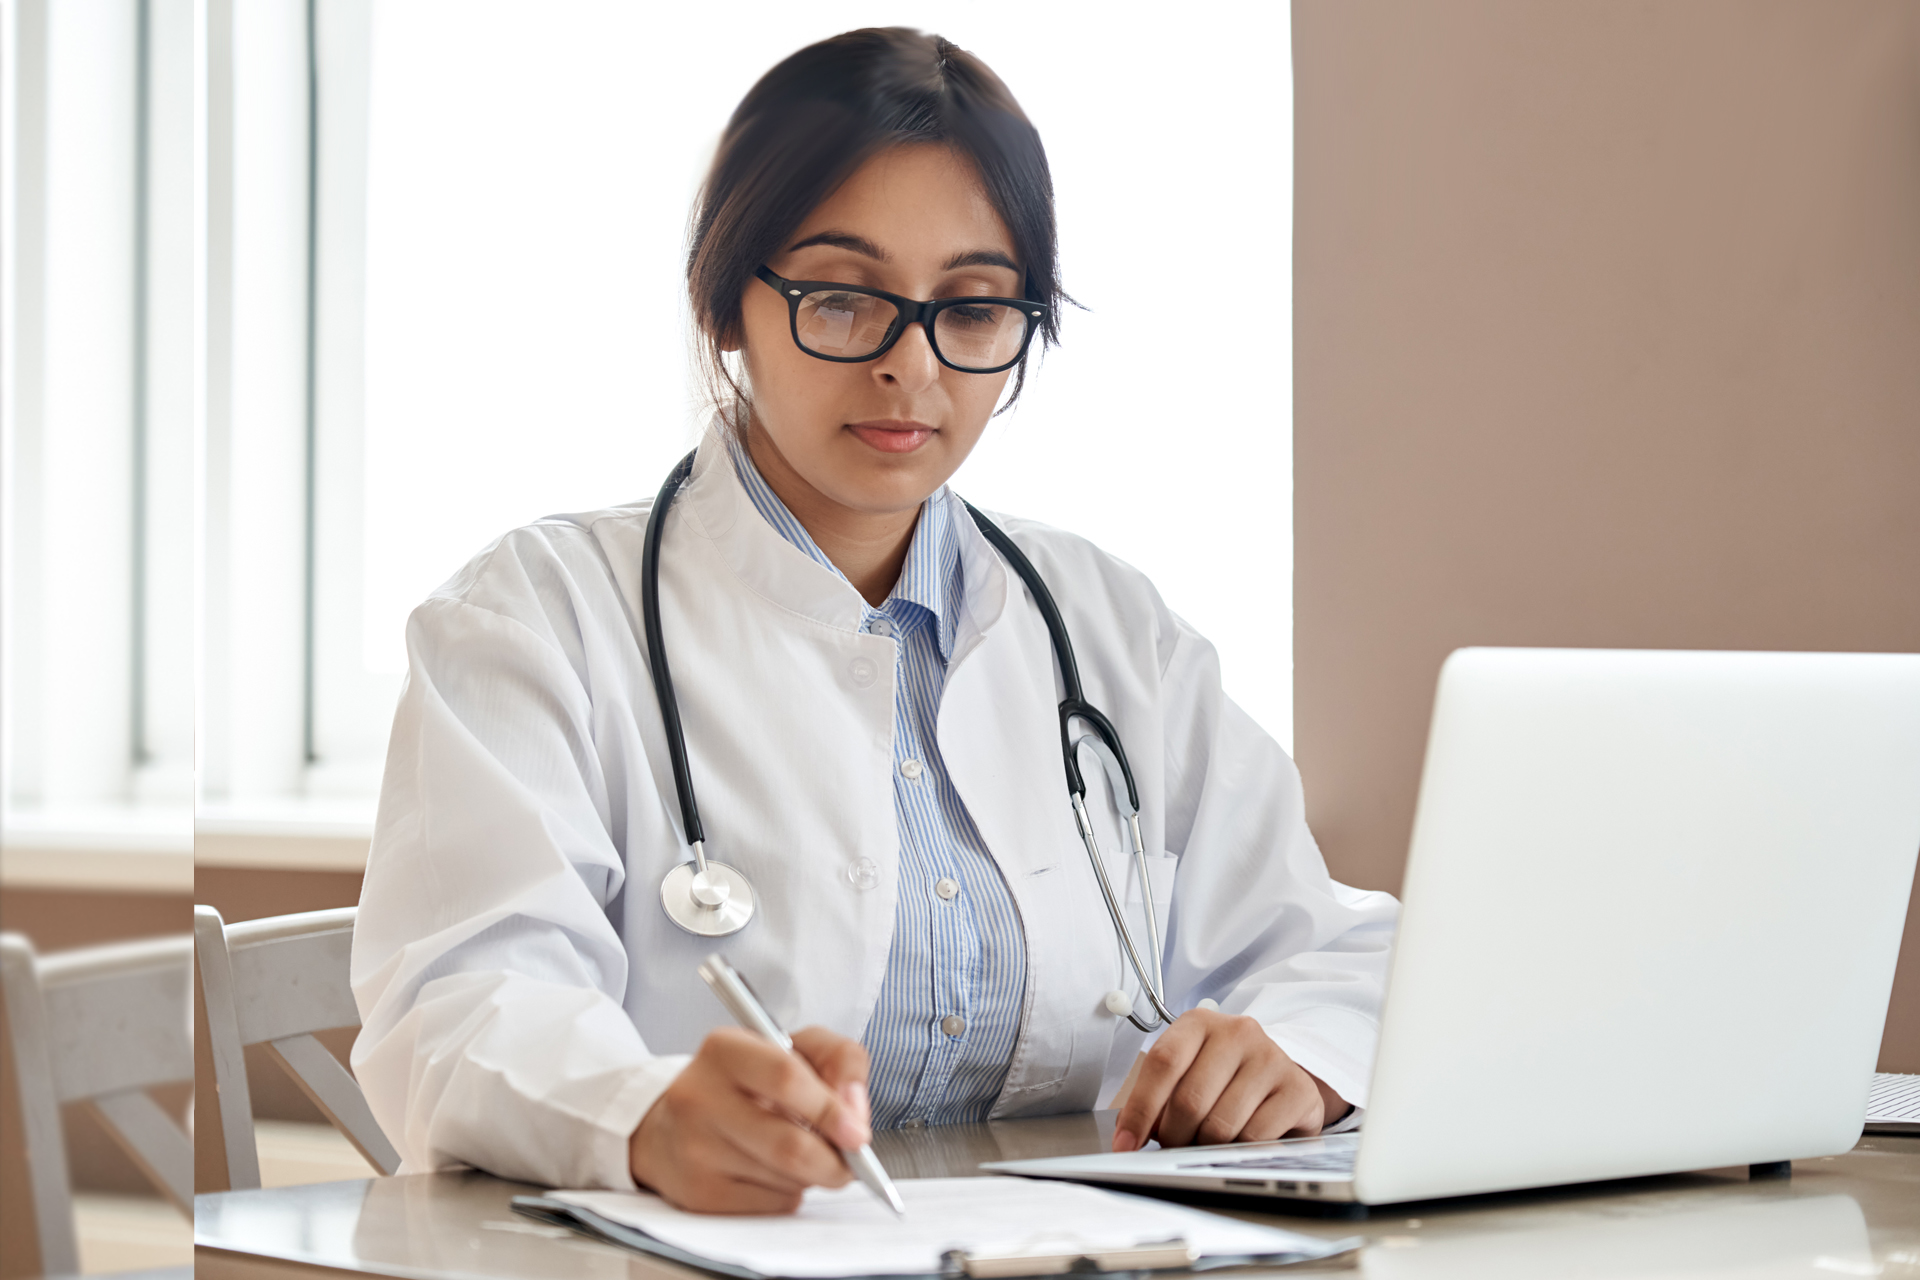 Indian ethnic female doctor physician gp wearing glasses white coat stethoscope writing filling medical form watching online medical webinar seminar training working sitting with laptop at workplace